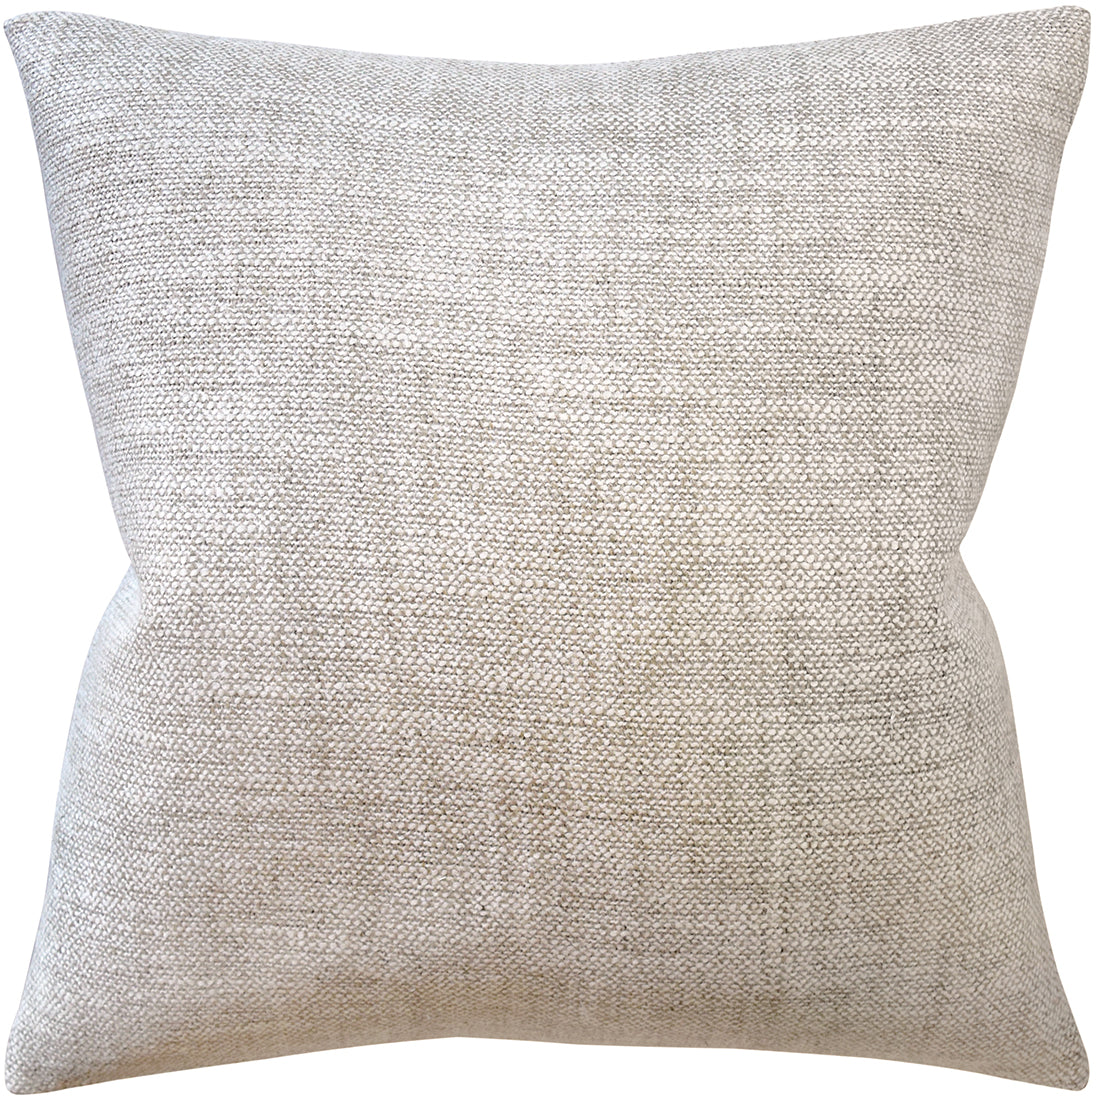 Ryan Studio Amagansett Pillow in Taupe